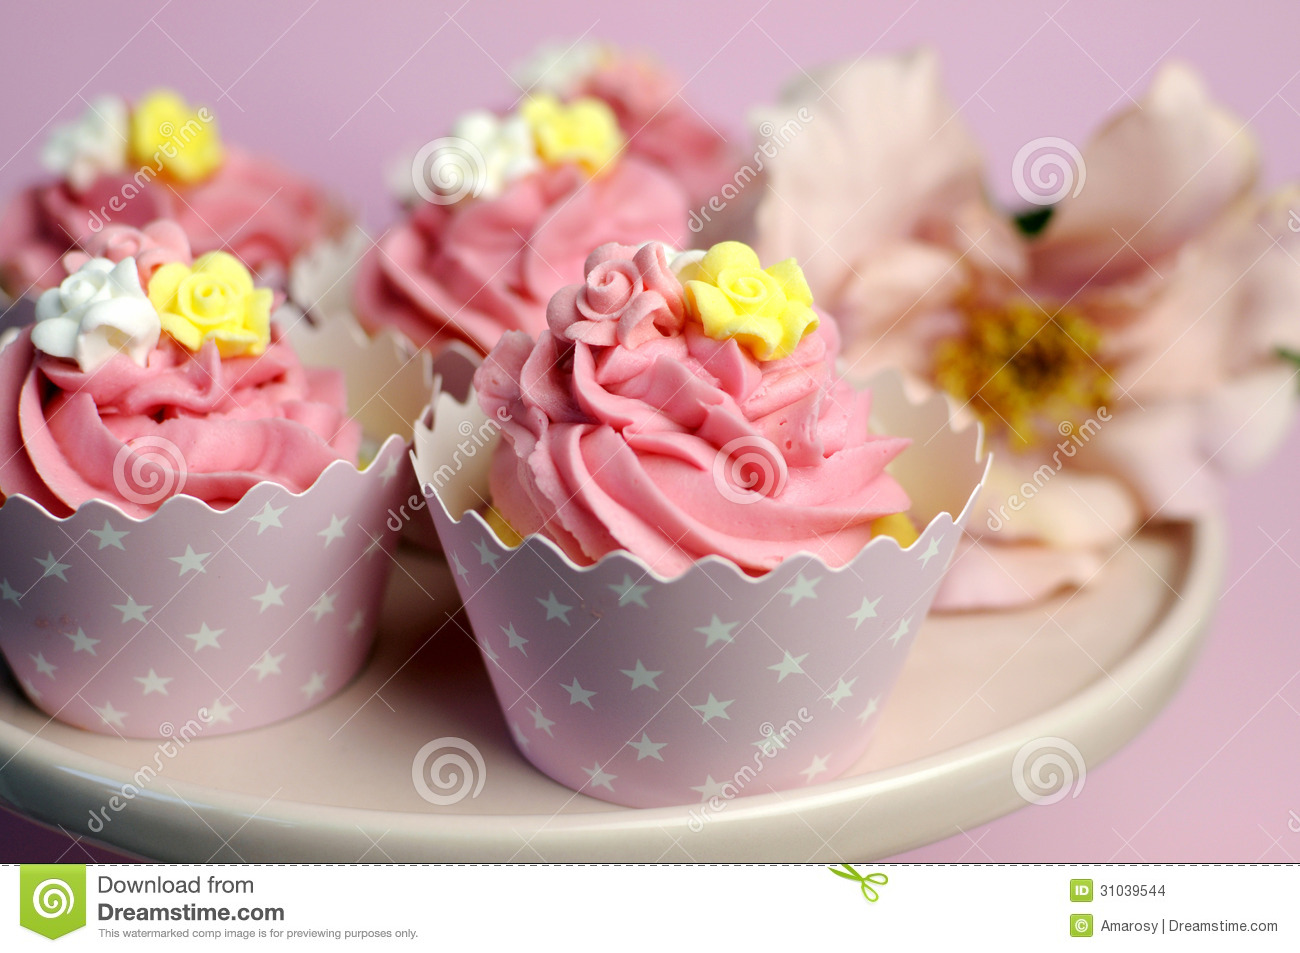 Beautiful Pink Decorated Cupcakes On Pink Cake Stand